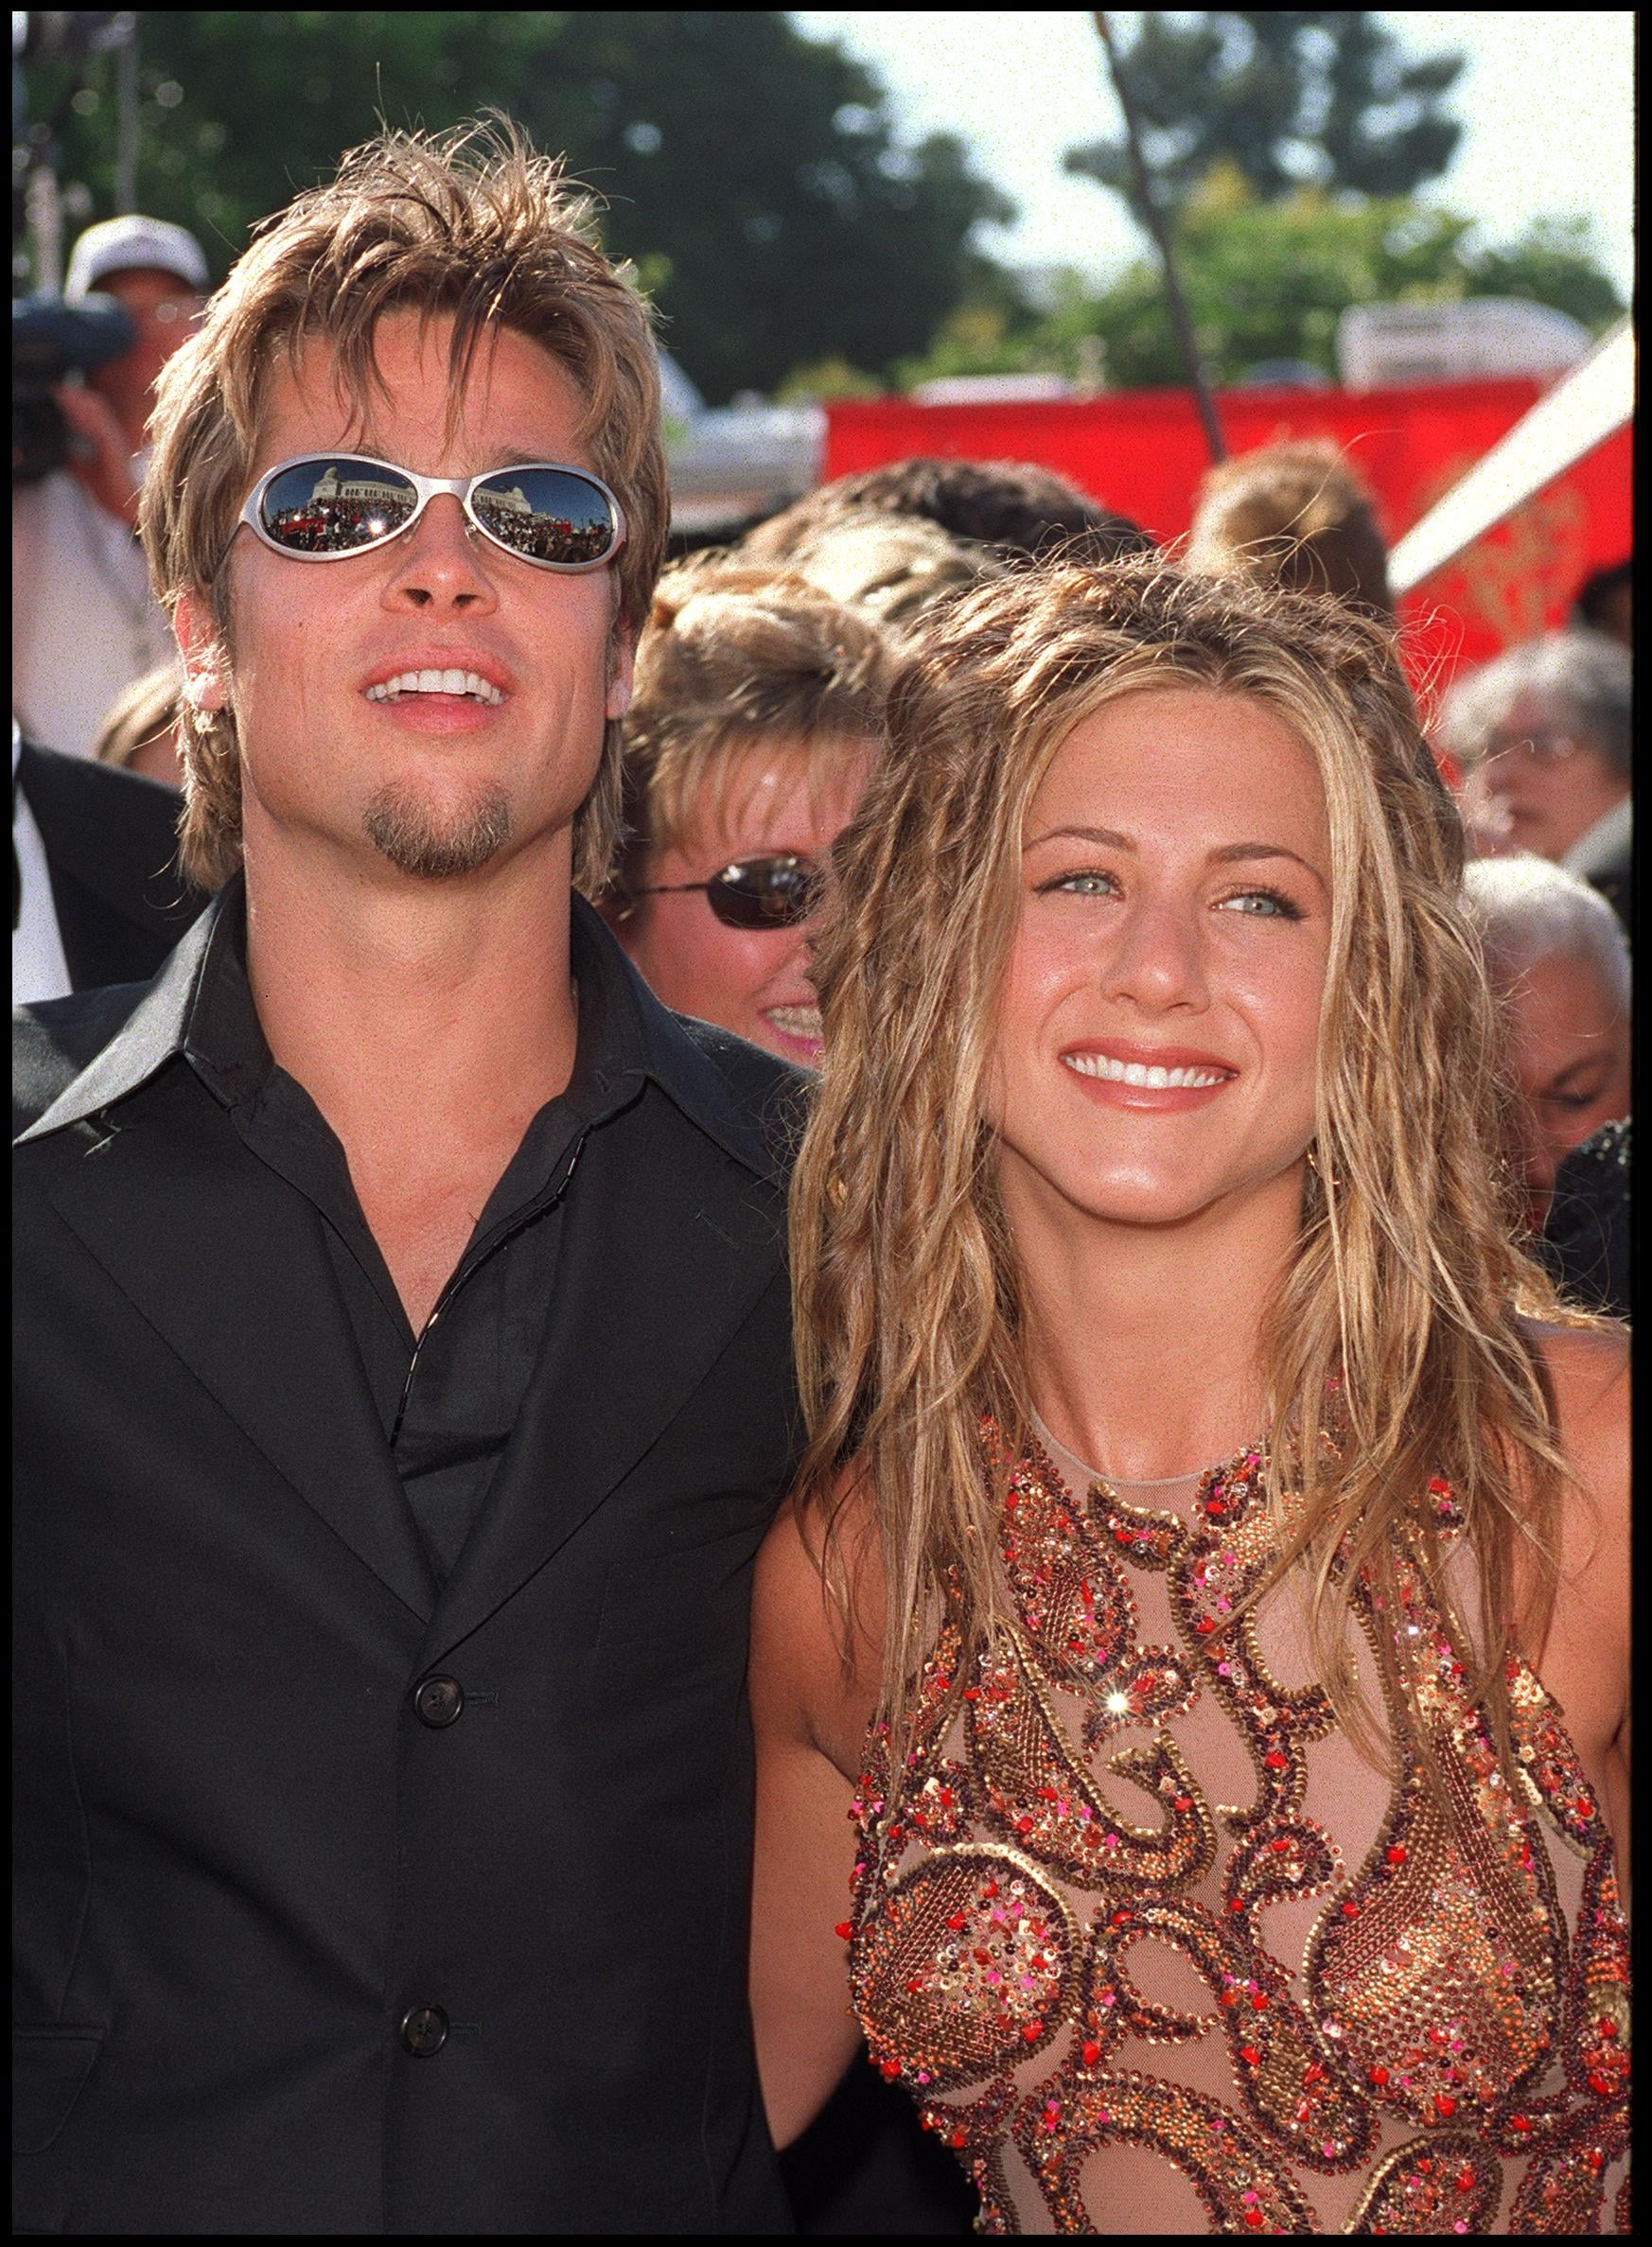 373073_01: 09/12/99. Los Angeles, CA. Brad Pitt and Jennifer Aniston arrive at the